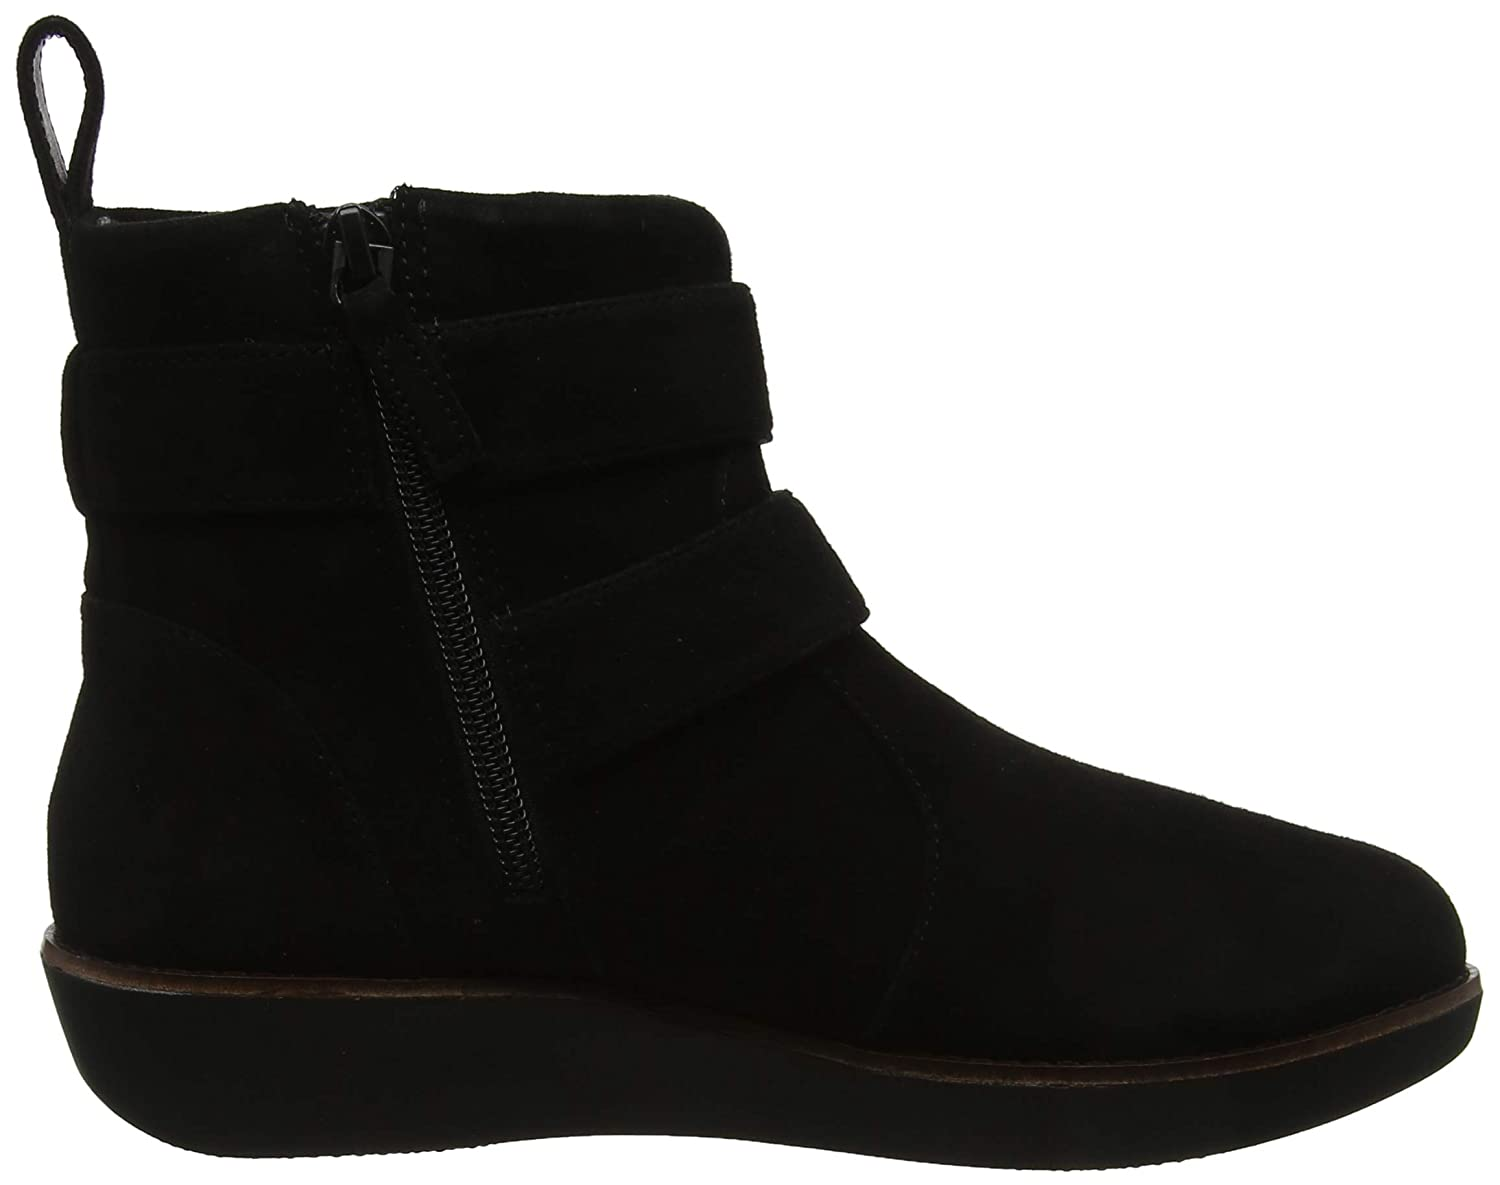 ea0684402585 Fitflop Women s Oona Buckle Ankle Boots  Amazon.co.uk  Shoes   Bags